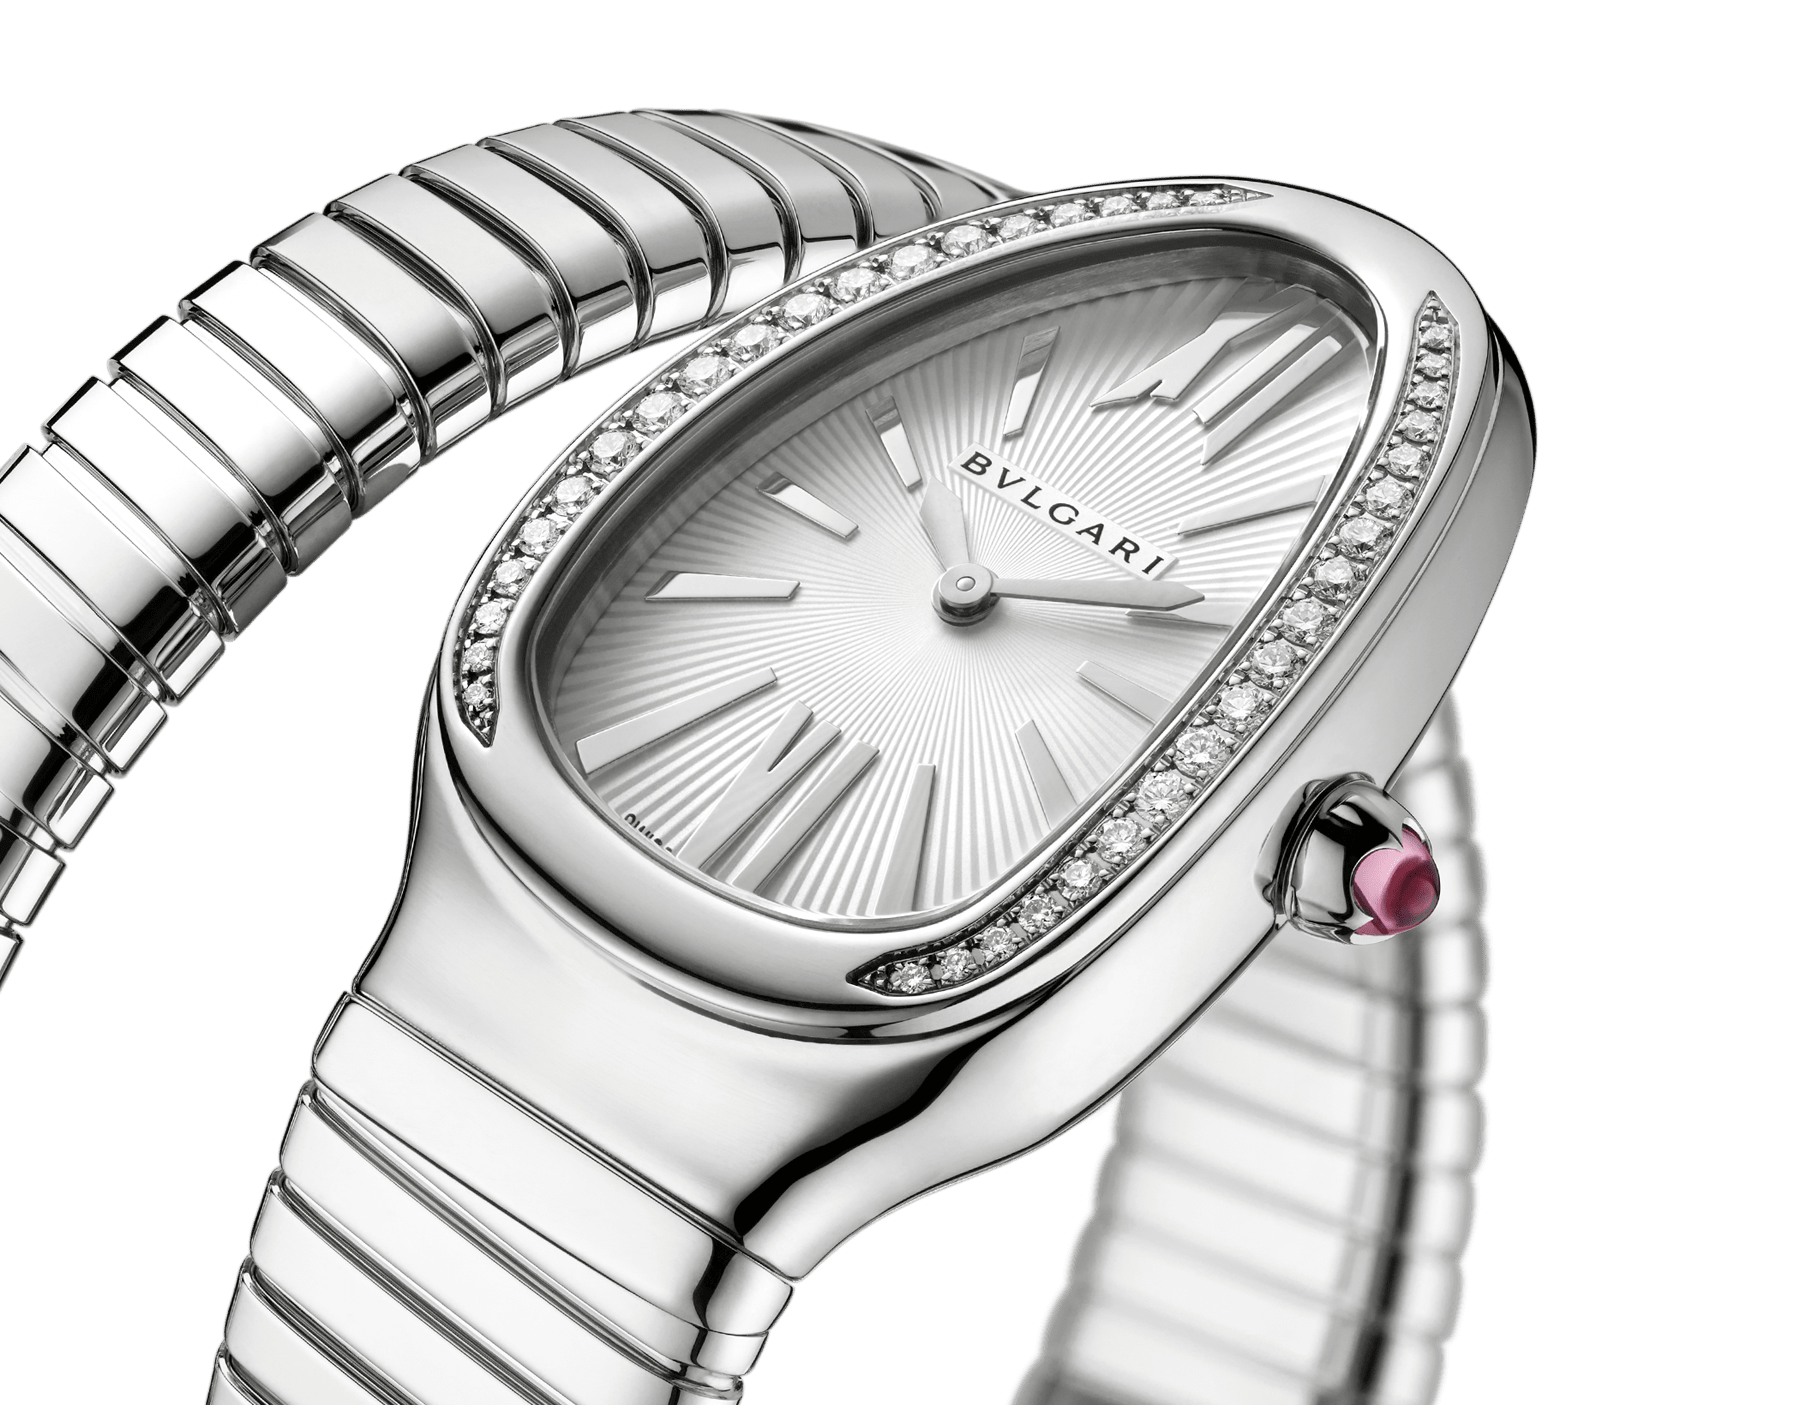 Serpenti Tubogas single spiral watch in stainless steel case and bracelet, bezel set with brilliant cut diamonds and silver opaline dial. Large Size. SrpntTubogas-white-dial2 image 3